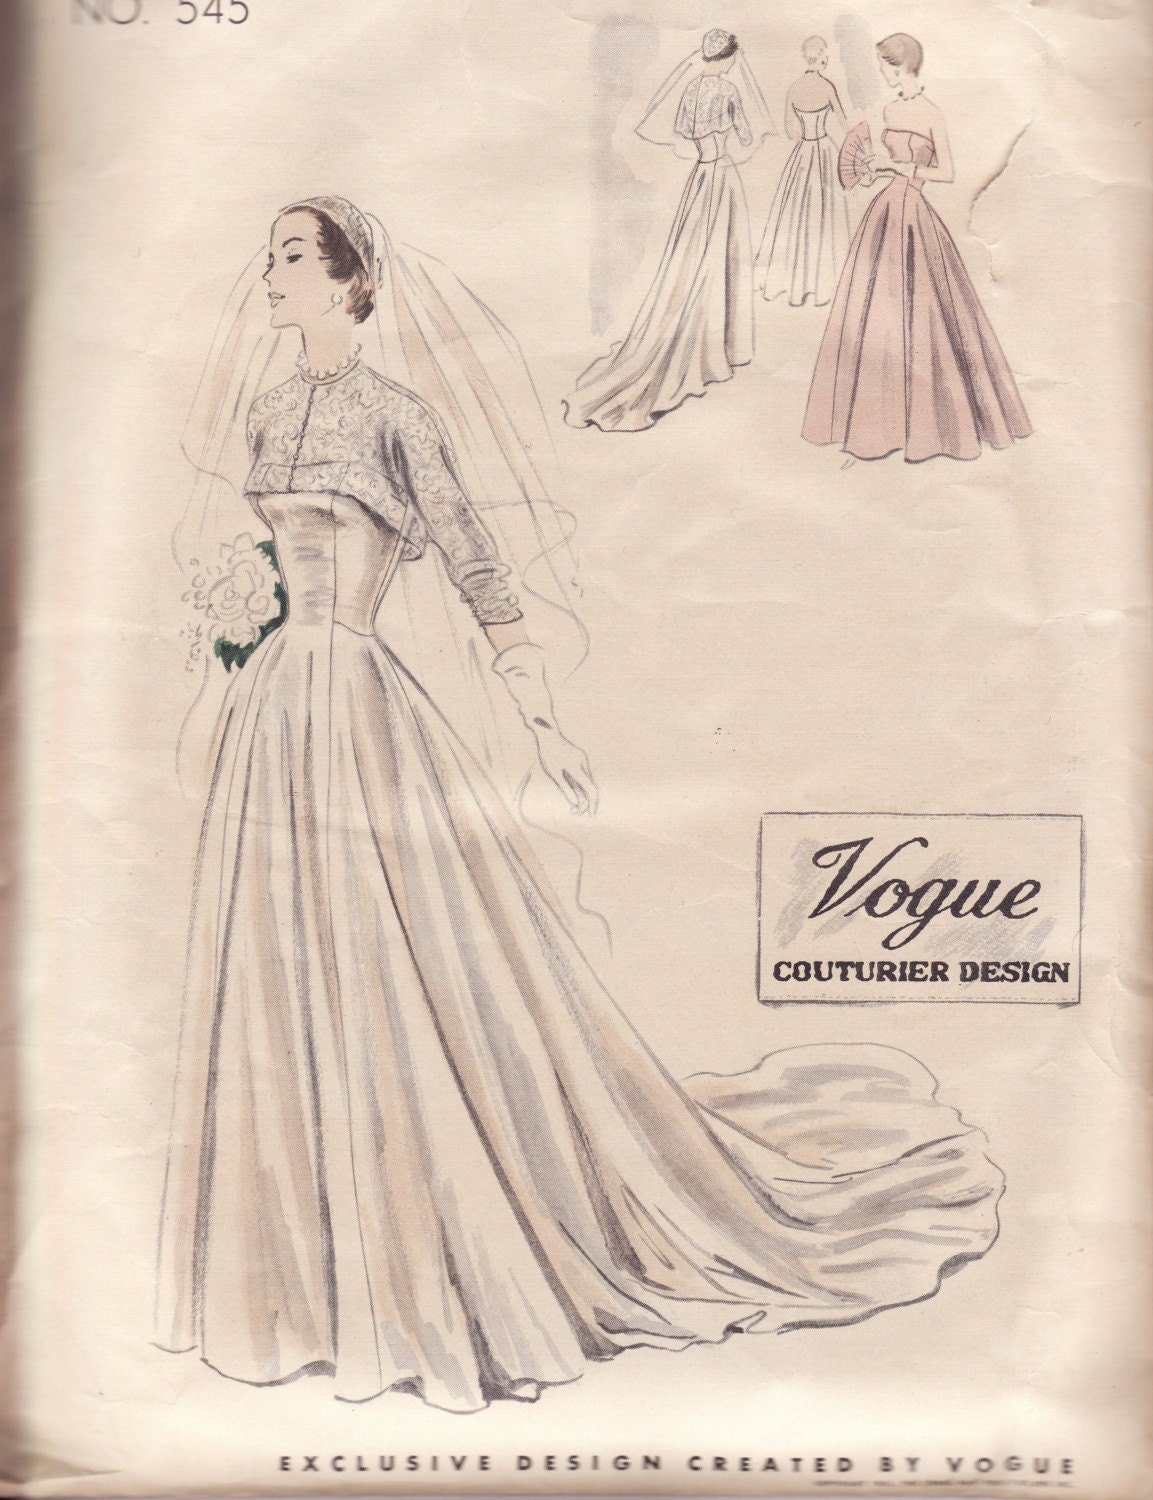 Vintage vogue wedding dress pattern 1950s style 545 for Wedding dress patterns vintage